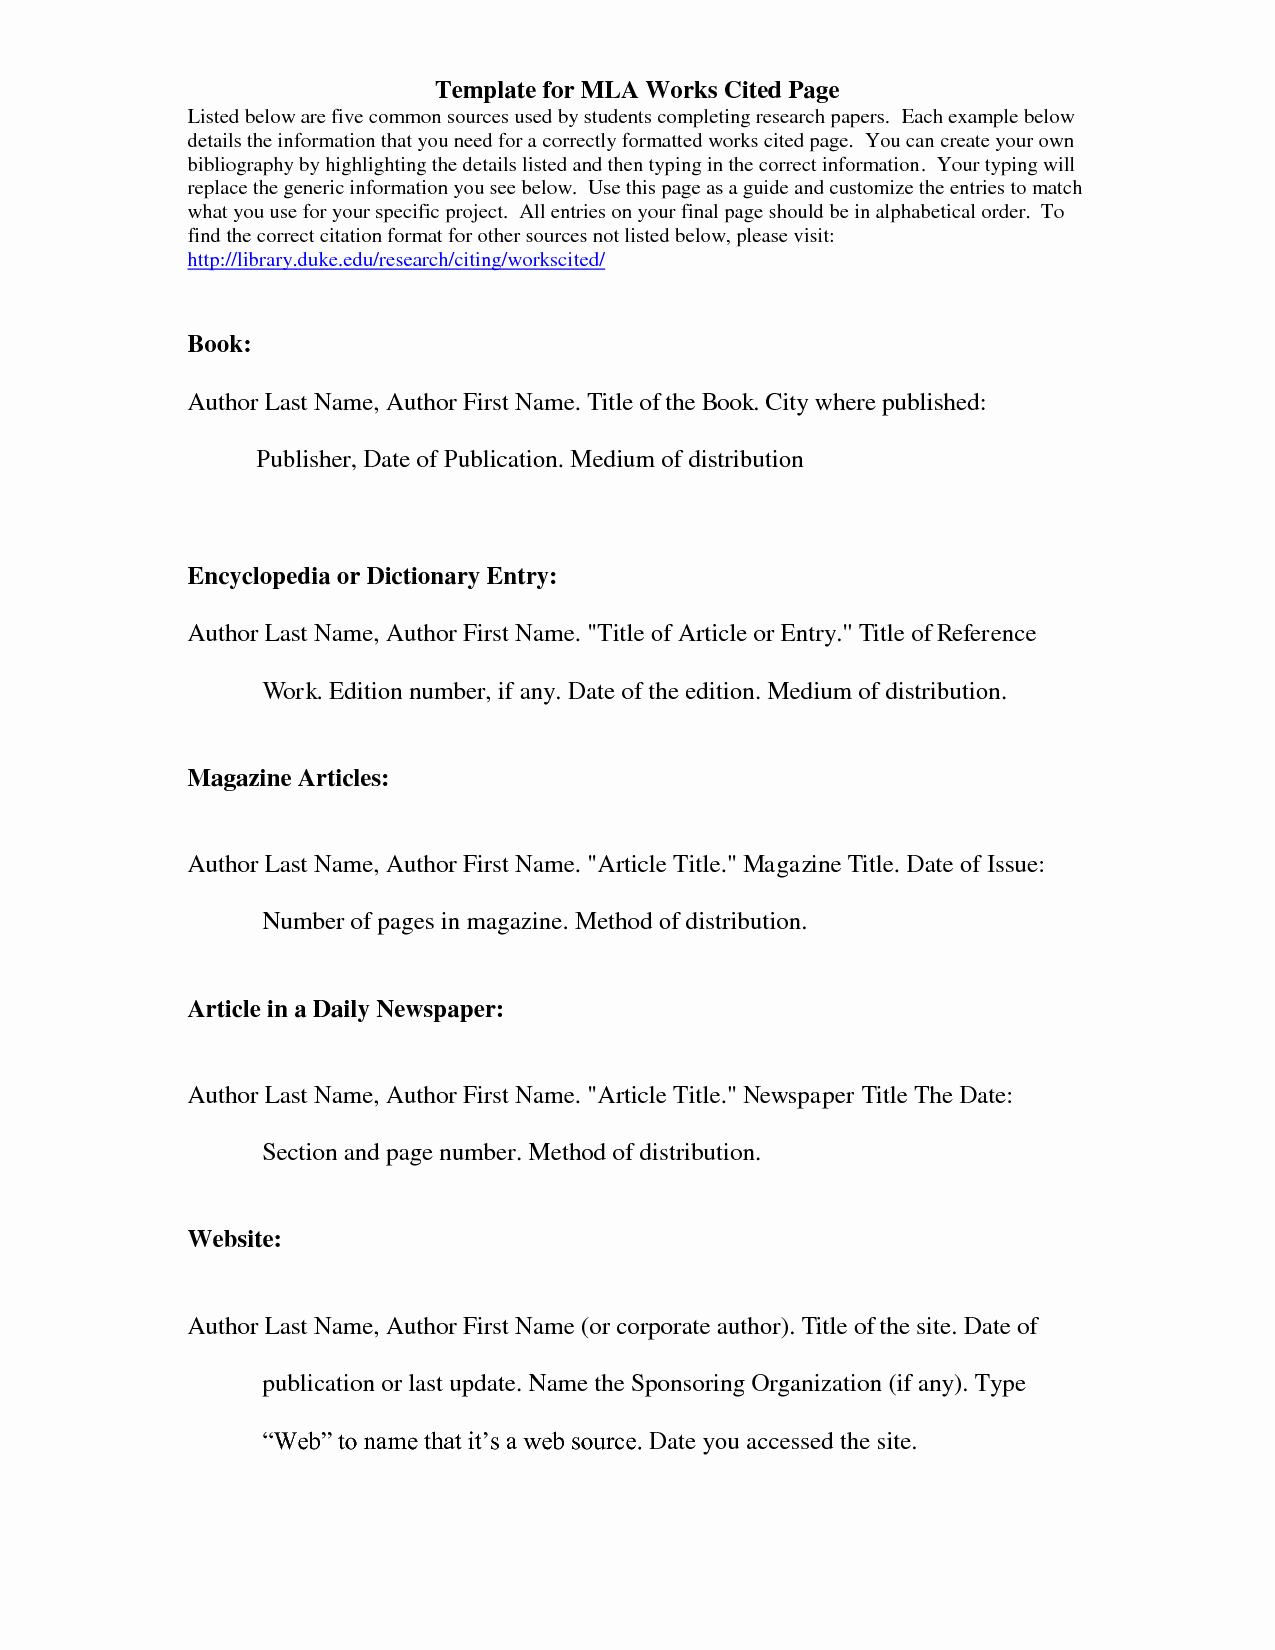 Mla Works Cited Page Template Beautiful Mla Citation Template